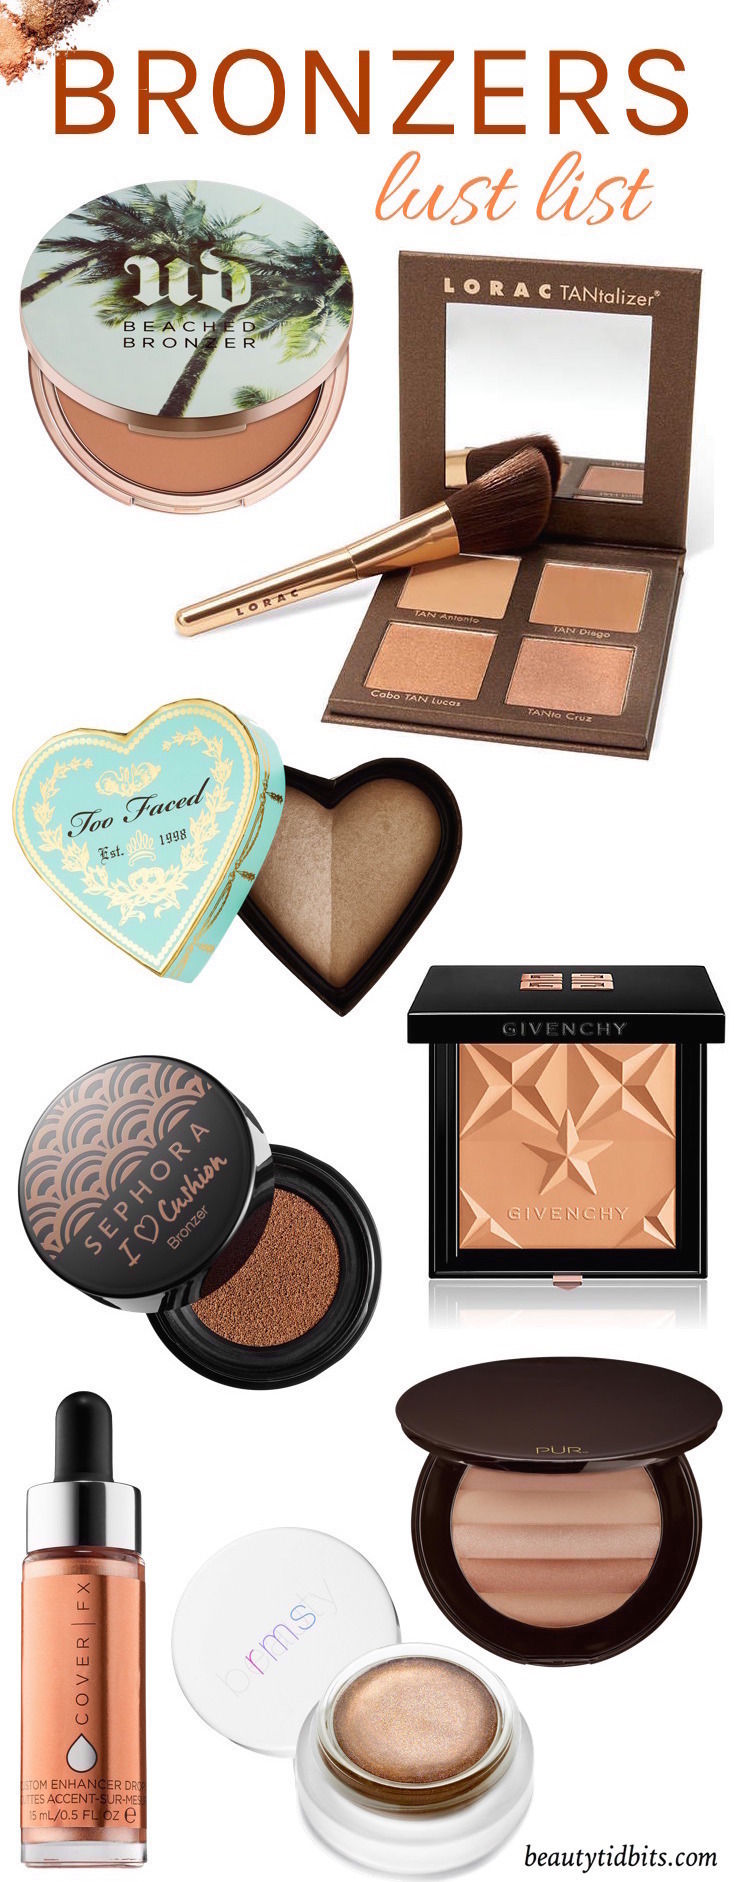 Need a new bronzer for summer? These fabulous tanning powders will give you a stunning sun-kissed glow that looks natural! And there's one for every skin tone from porcelain to mocha! Click through to find the perfect pick for you!